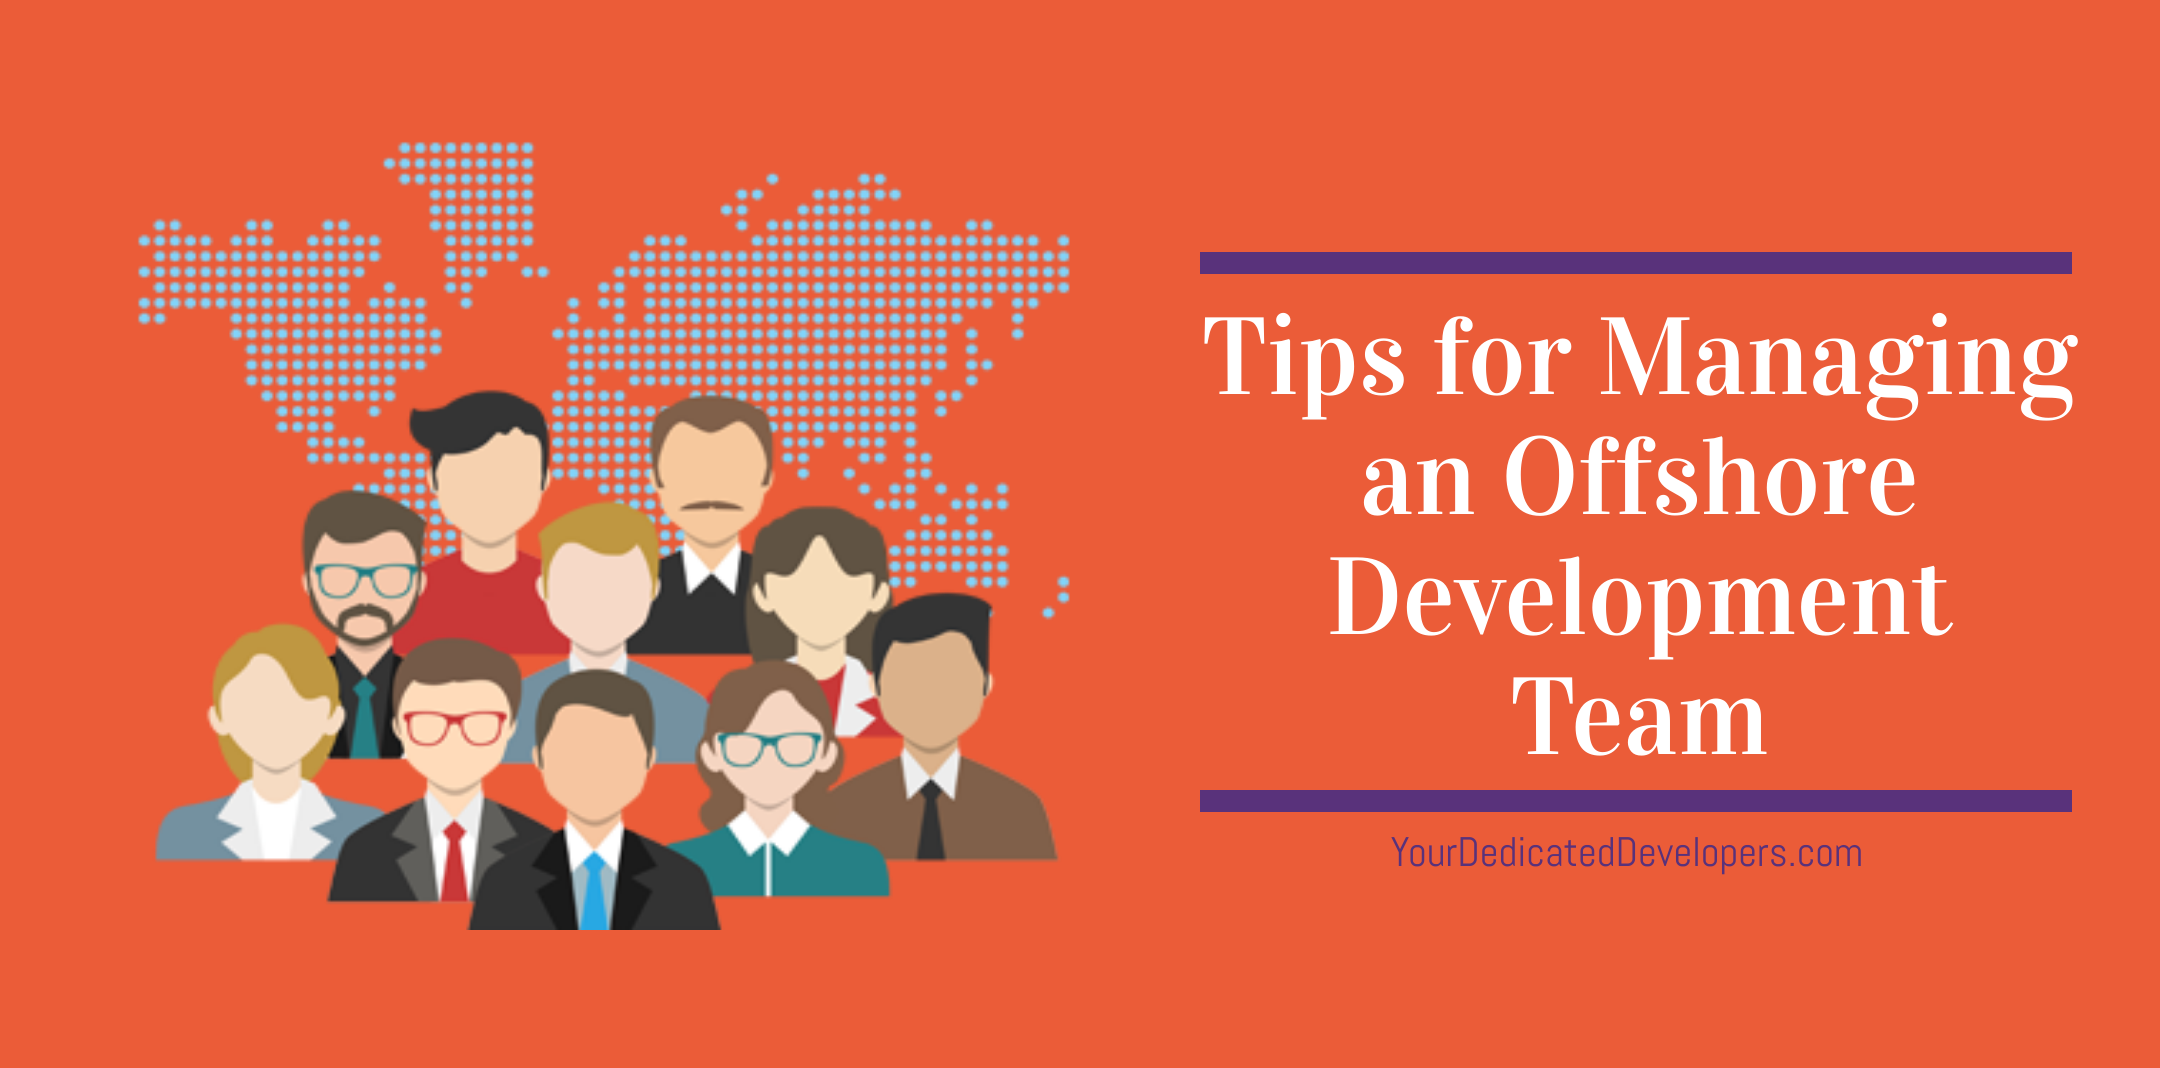 Tips for Managing an Offshore Development Team, Offshore Development partners, Offshore developers, Your Dedicated Developers